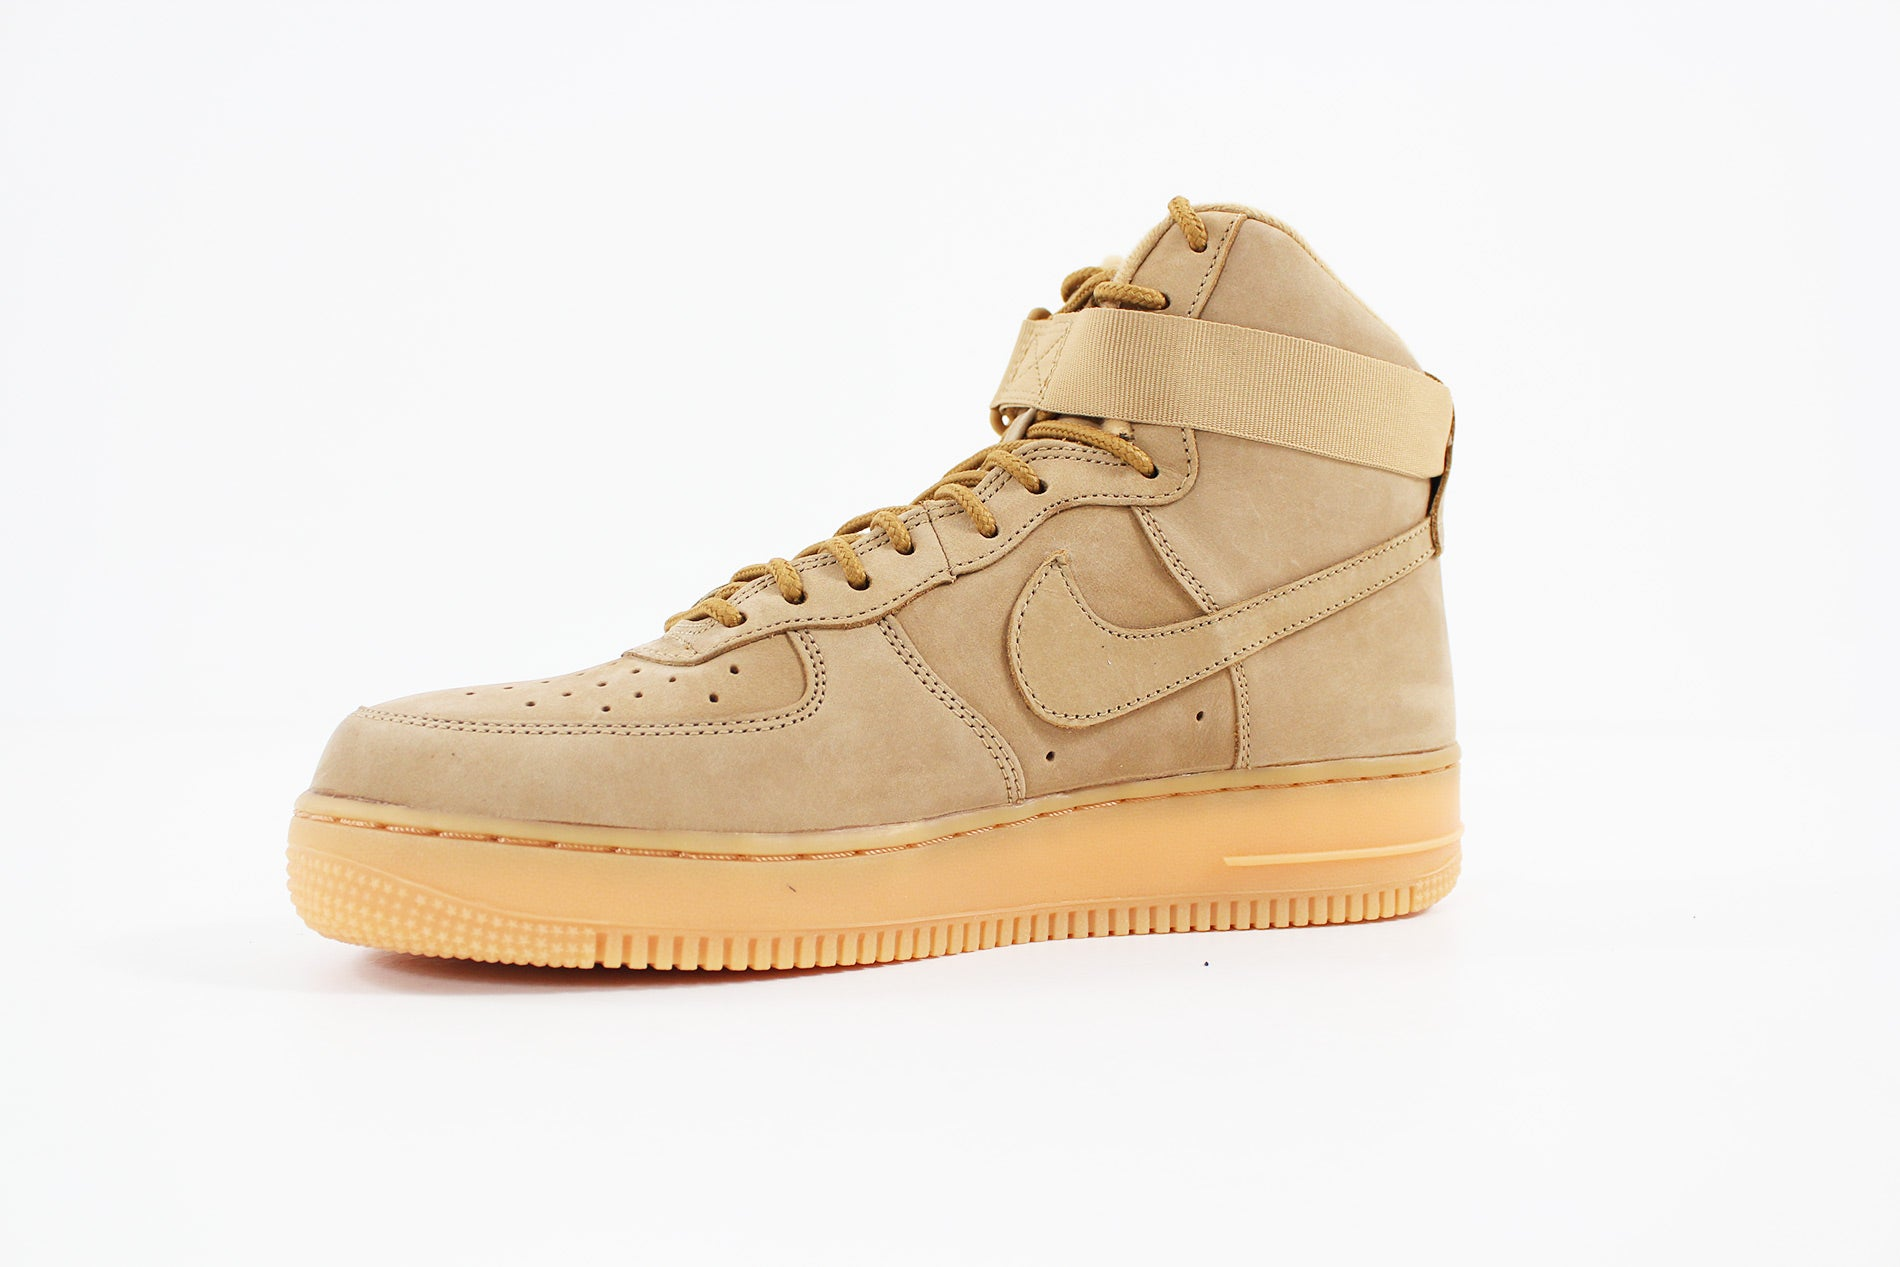 Nike Air Force 1 High '07 LV8 WB (FLAX FLAX OUTDOOR